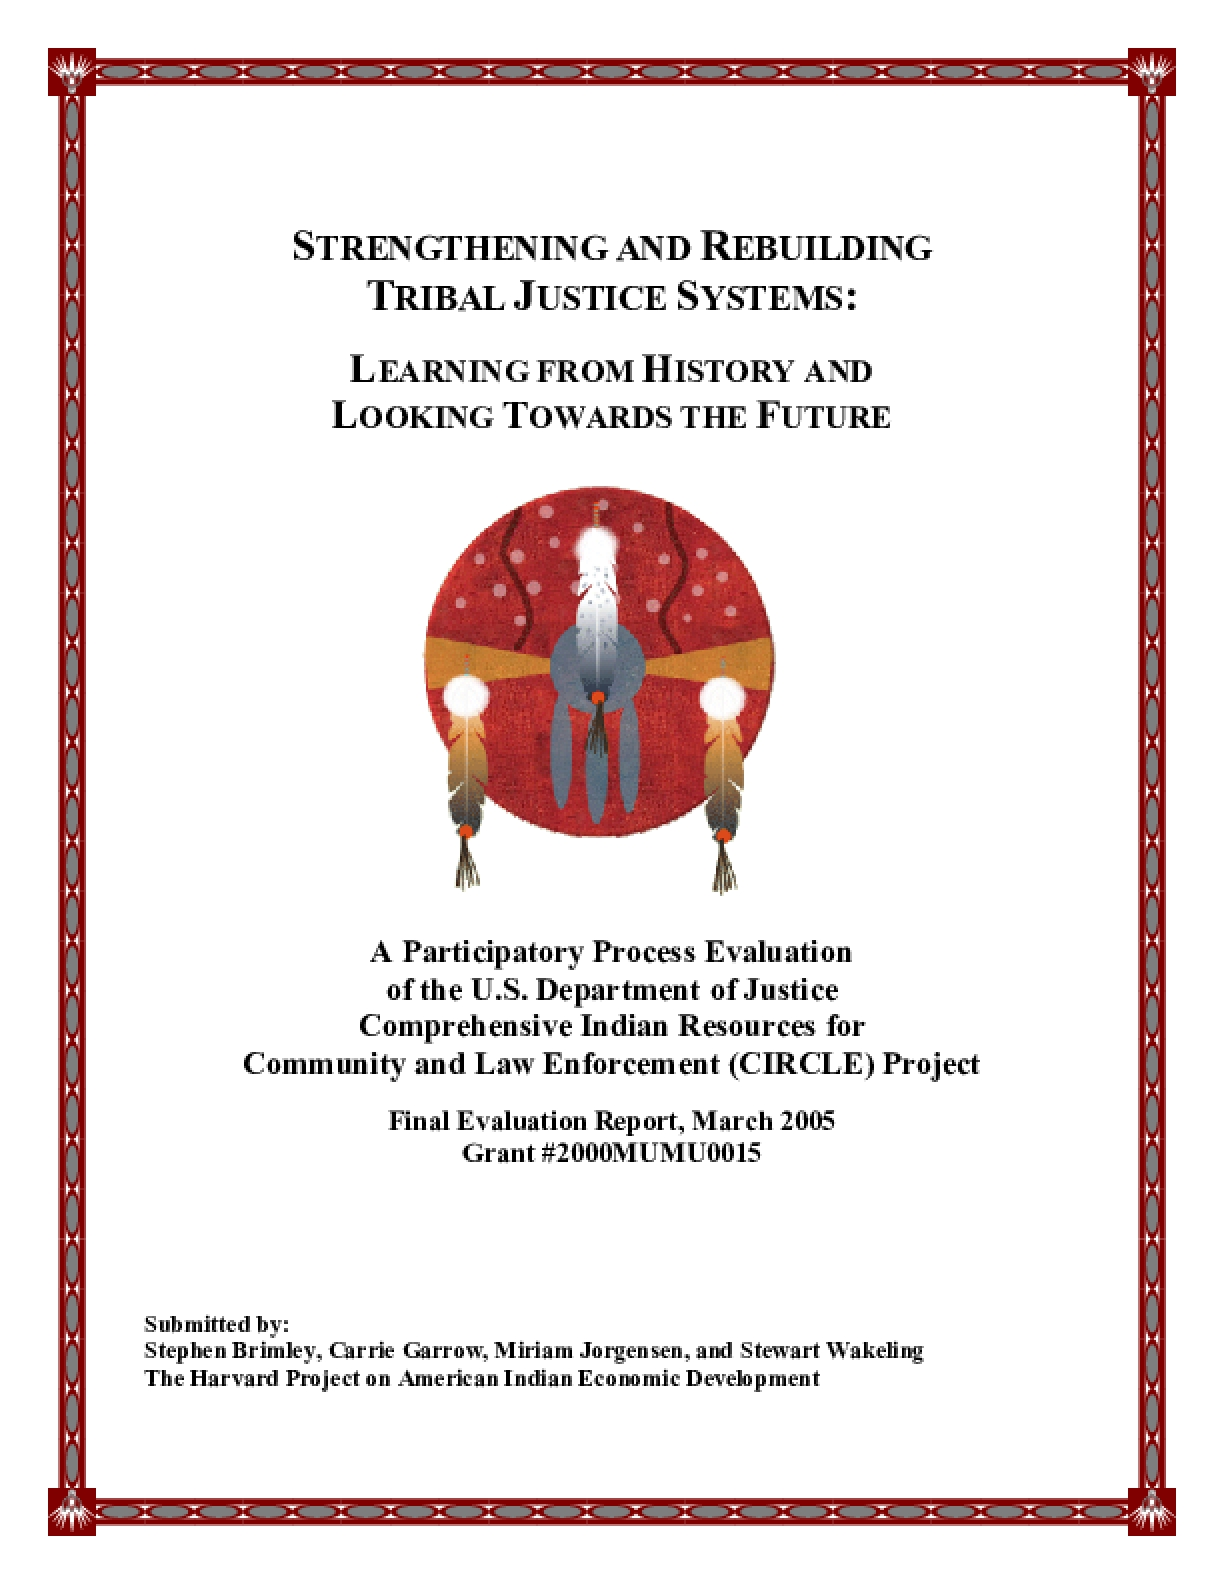 Advancing Positive Paths for Native American Boys & Young Men